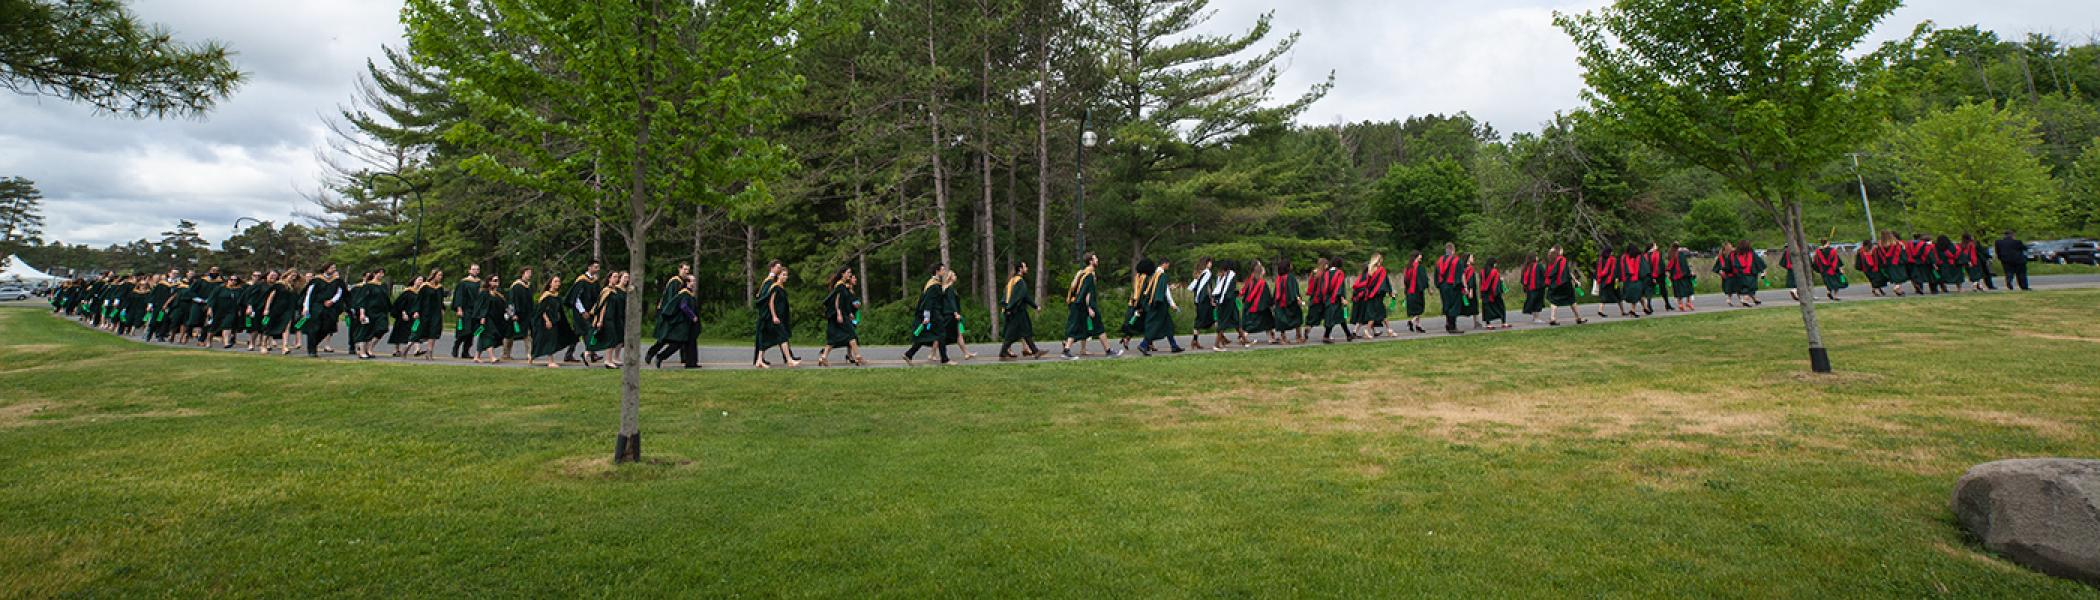 Group of students in convocation gowns walking across a field of grass in front of a row of evergreen trees in the summer sun